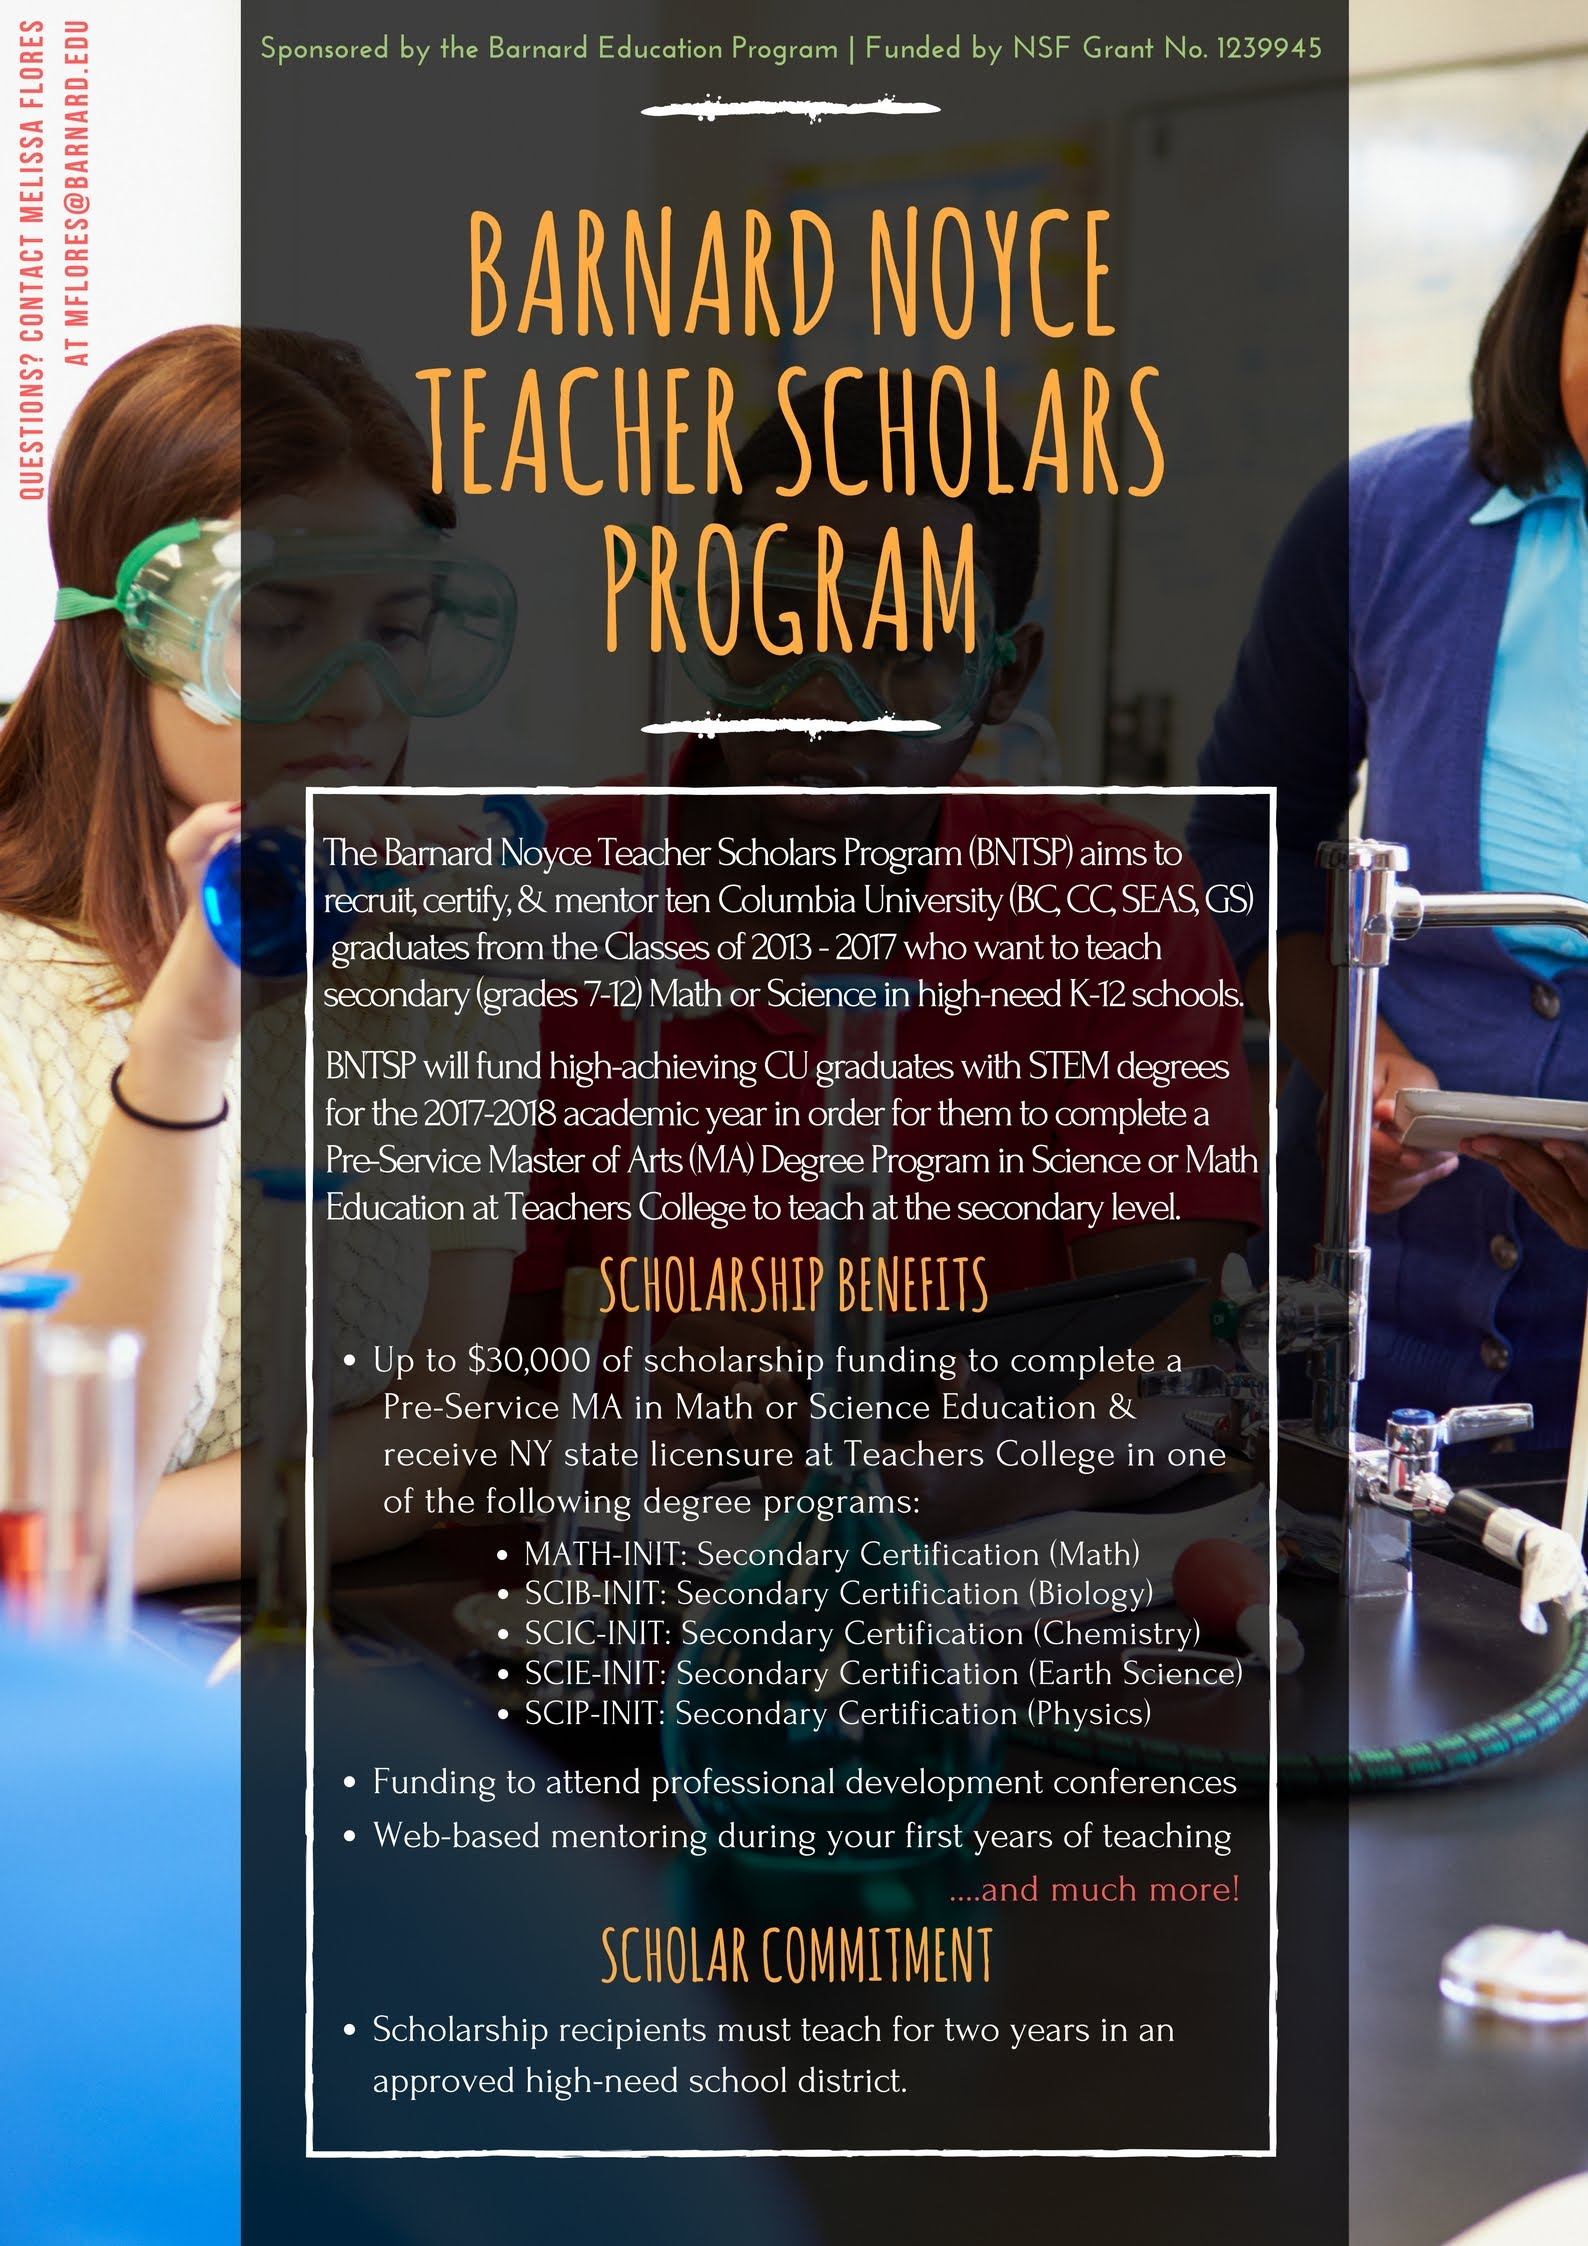 https://sites.google.com/a/barnard.edu/barnard-noyce-teacher-scholars-program-bntsp/home/BarnardNoyceTeacherScholarsProgram%28MA%29.jpg?attredirects=0